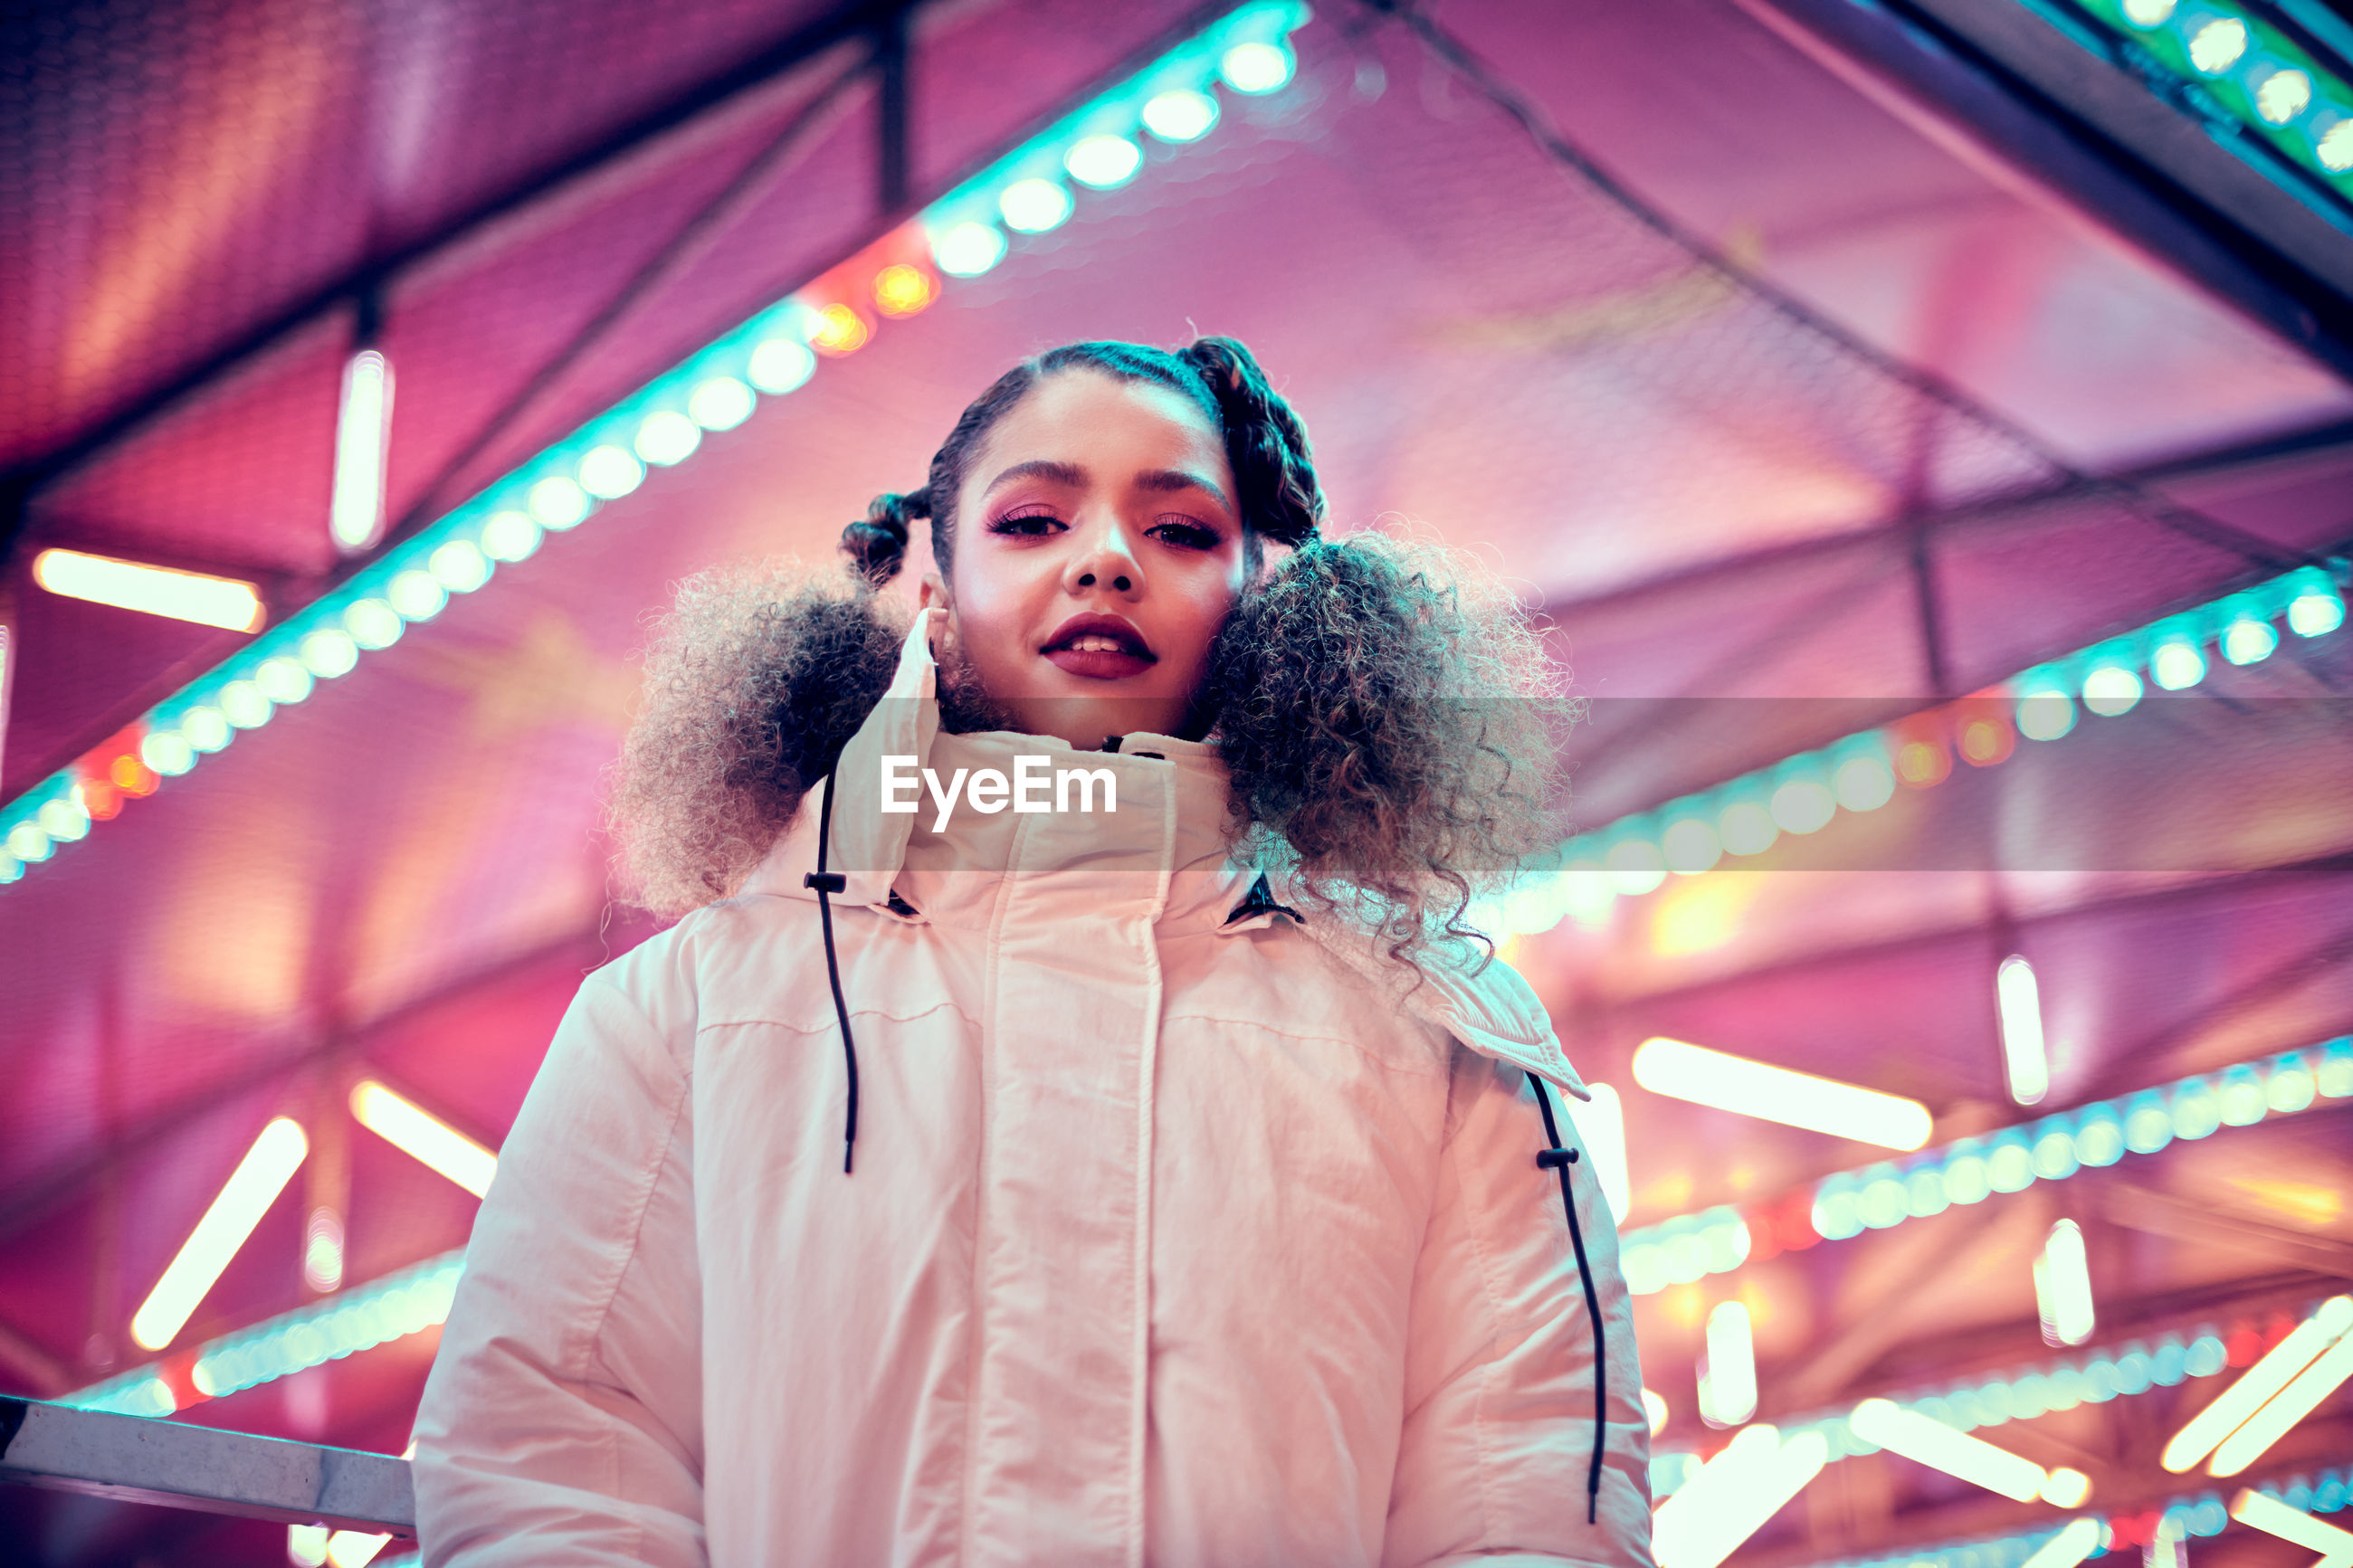 Low angle portrait of smiling young woman in amusement park at night